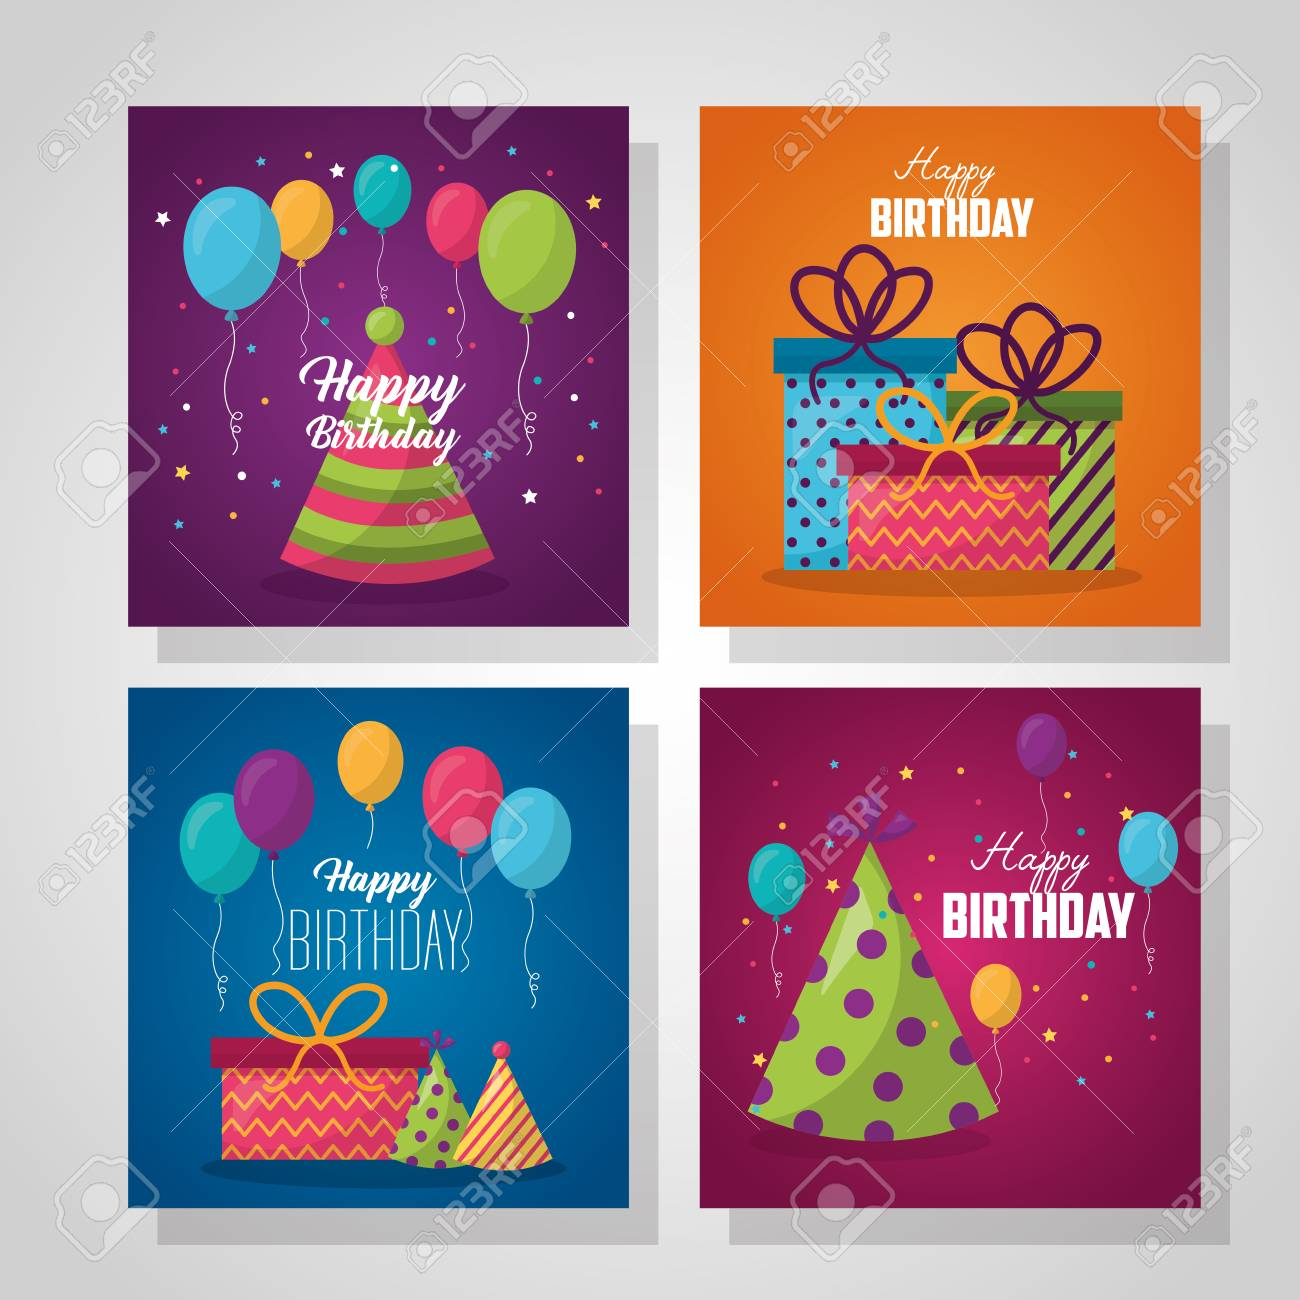 Happy Birthday Labels Party Celebration Cakes Gift Boxes Balloons